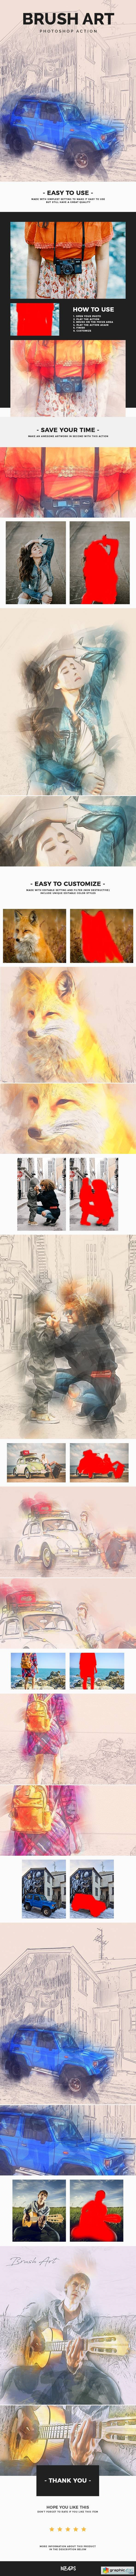 Brush Art Photoshop Action